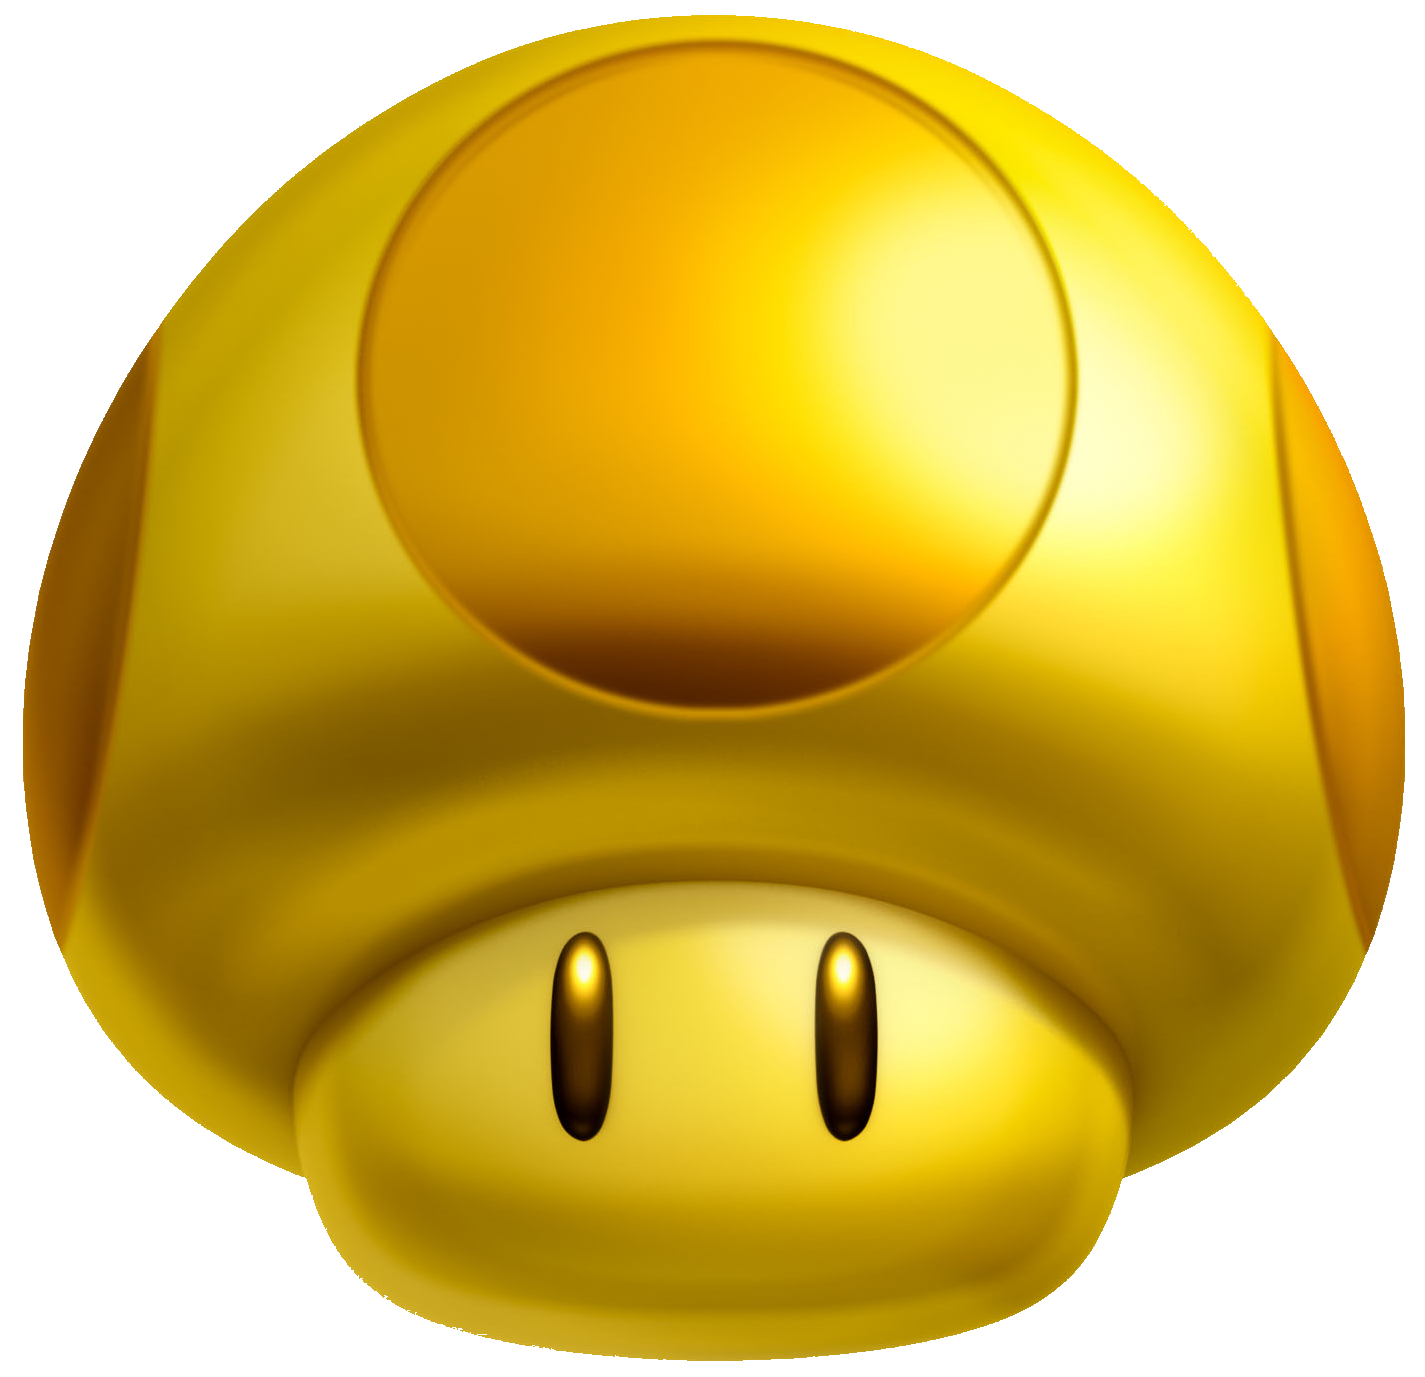 Emoticon Mario Smiley Super Bros Free Clipart HQ PNG Image